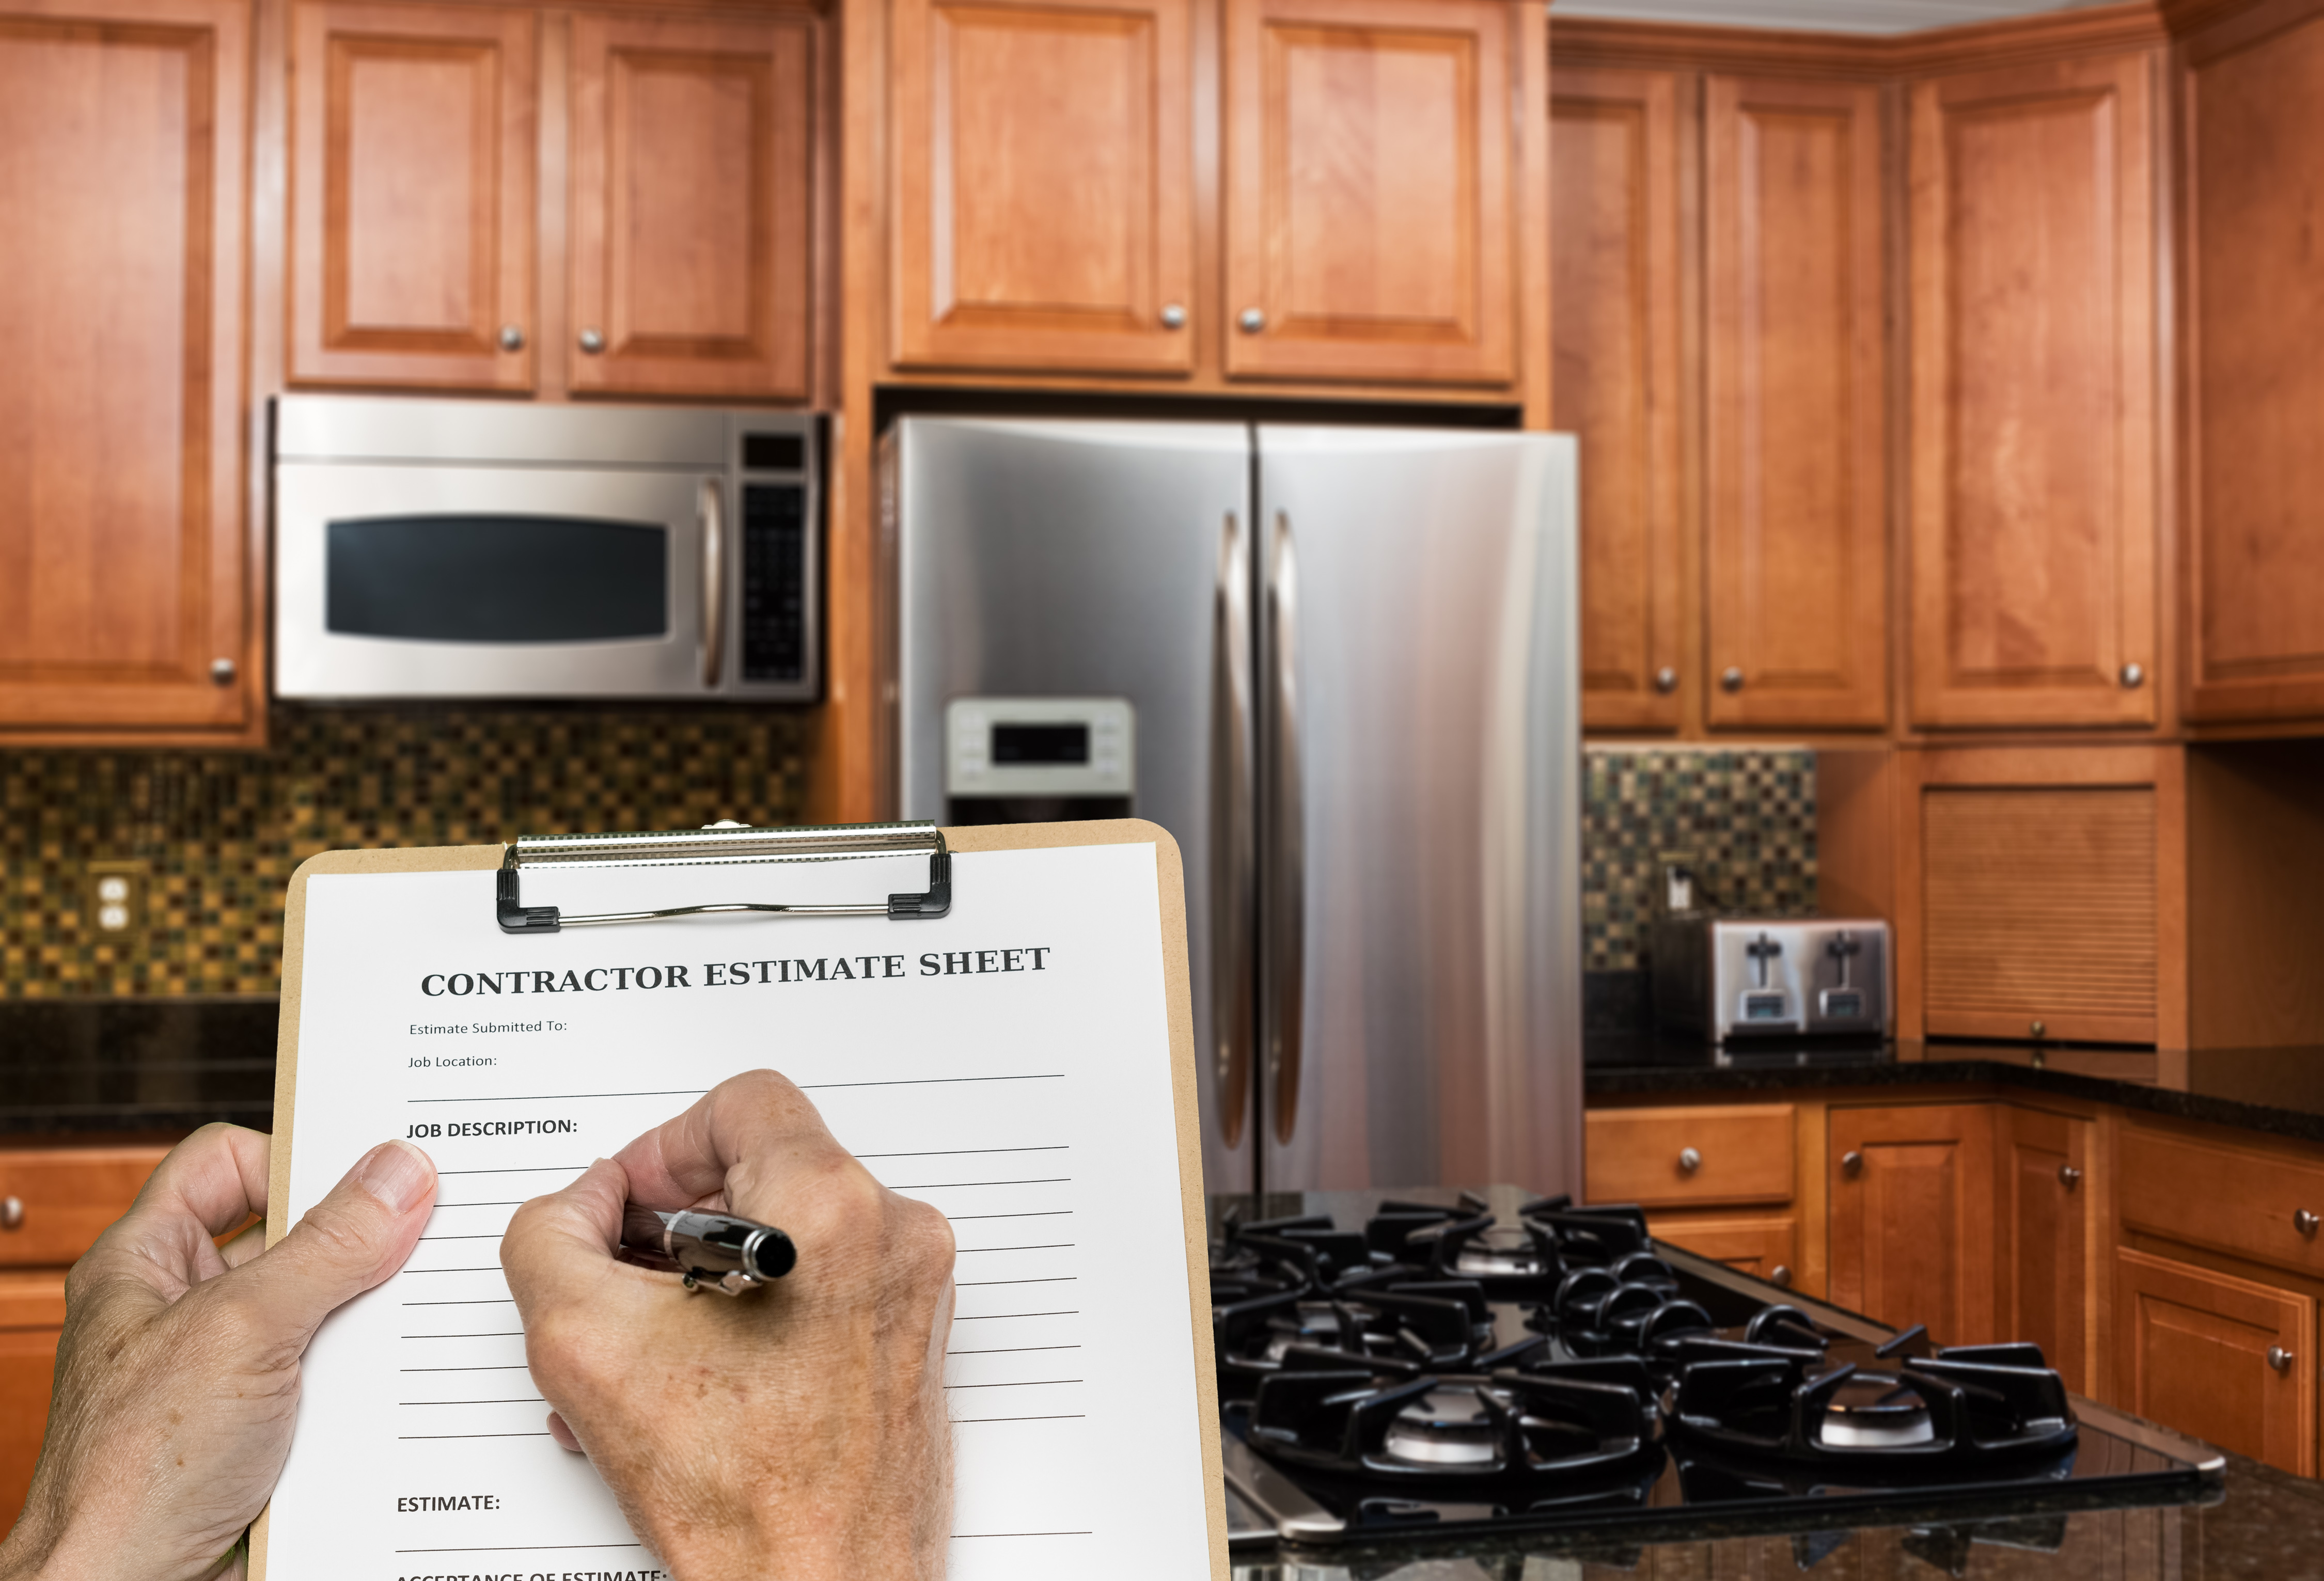 Essential Kitchen Modifications for Seniors to Remain Safe at Home